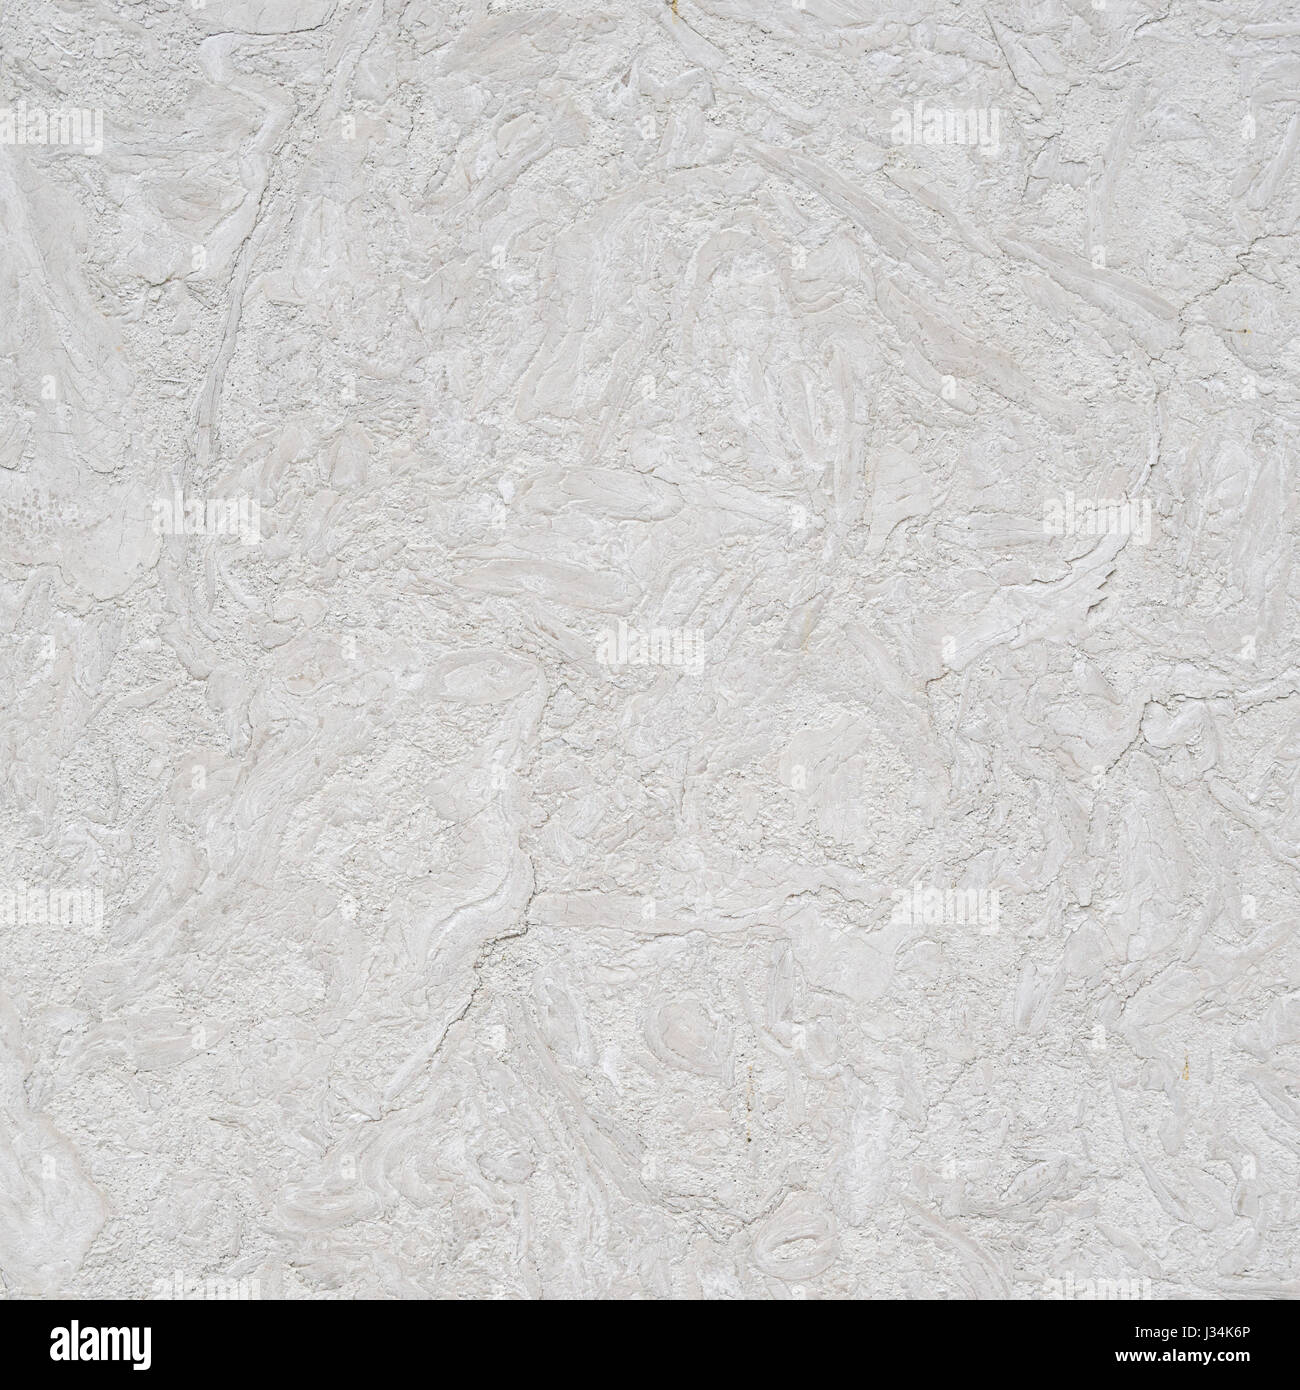 marbled white stone wall texture background - Stock Image